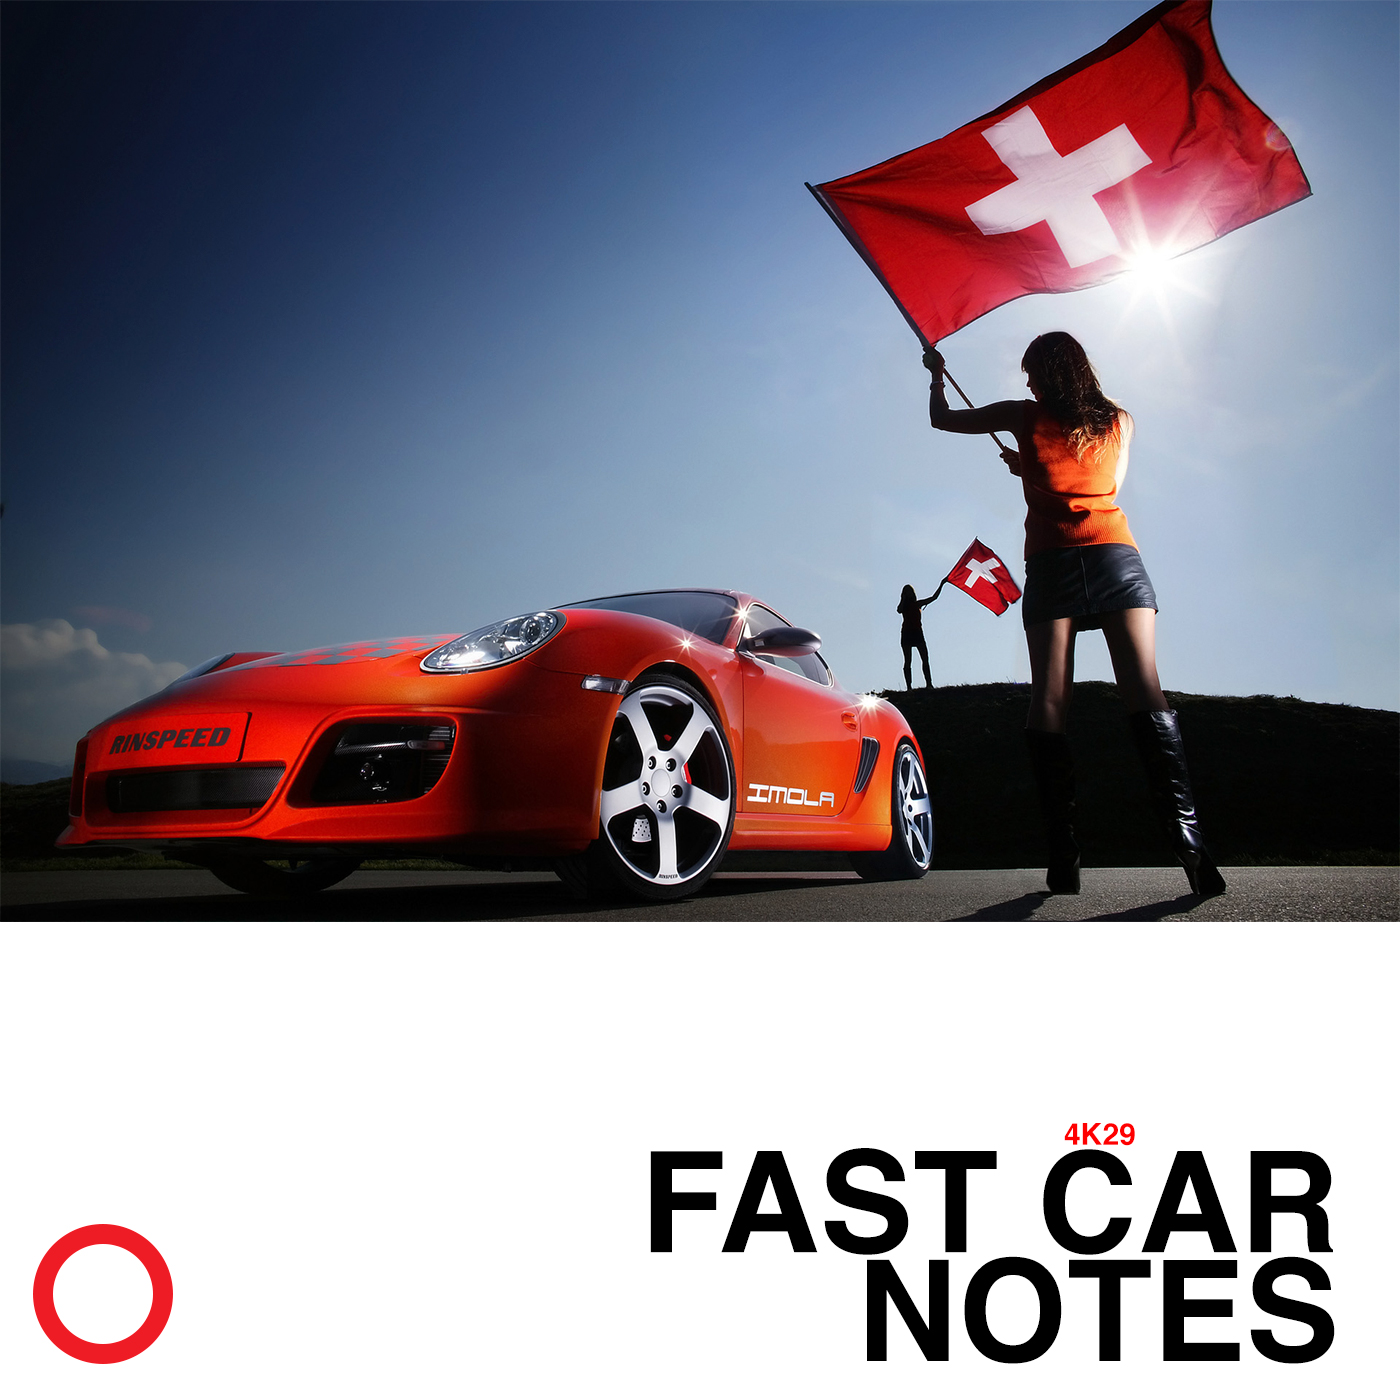 FAST CAR NOTES 4K29